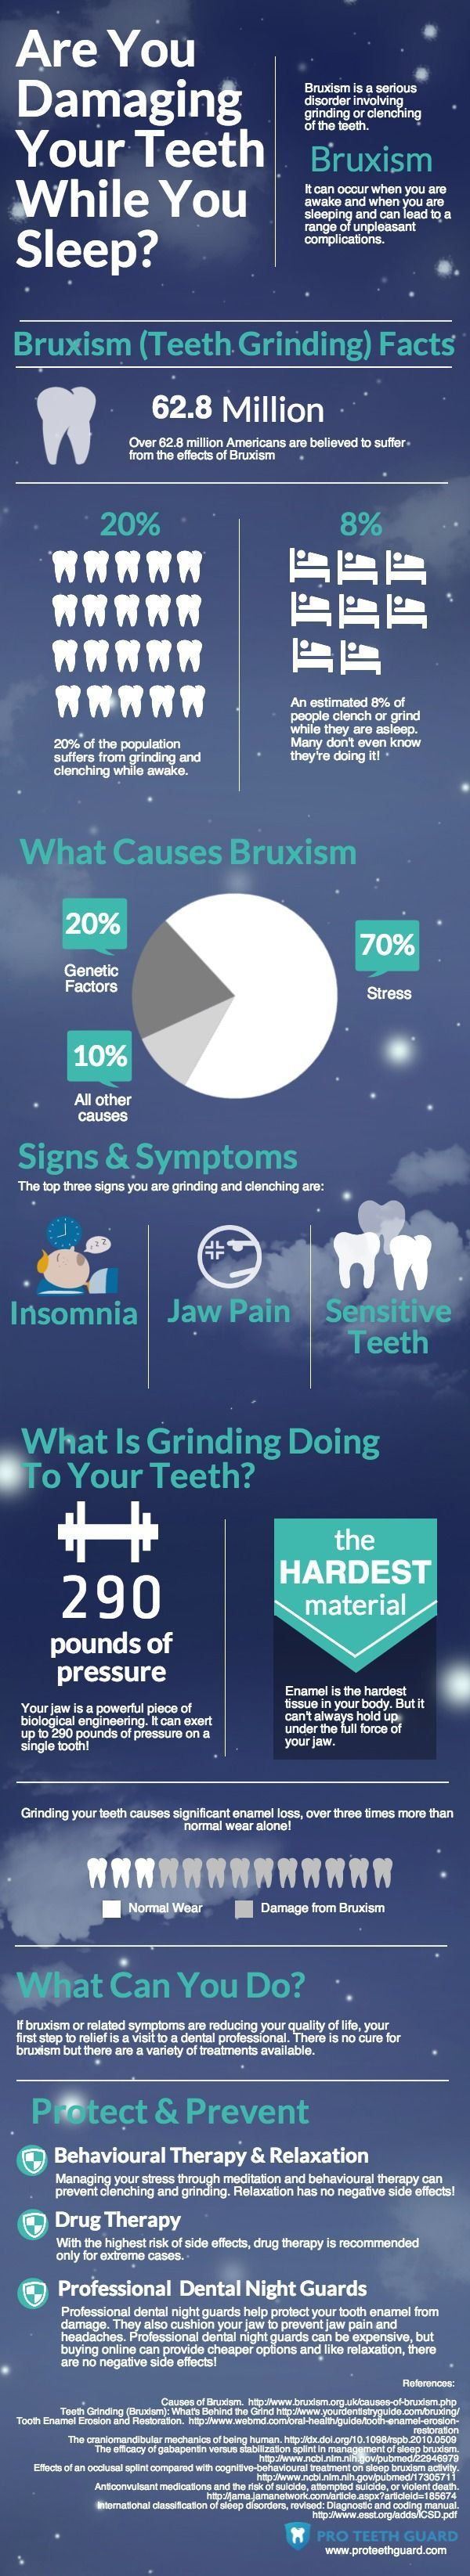 Are you Damaging your Teeth While you Sleep? #infographic #DentalHealth #Health